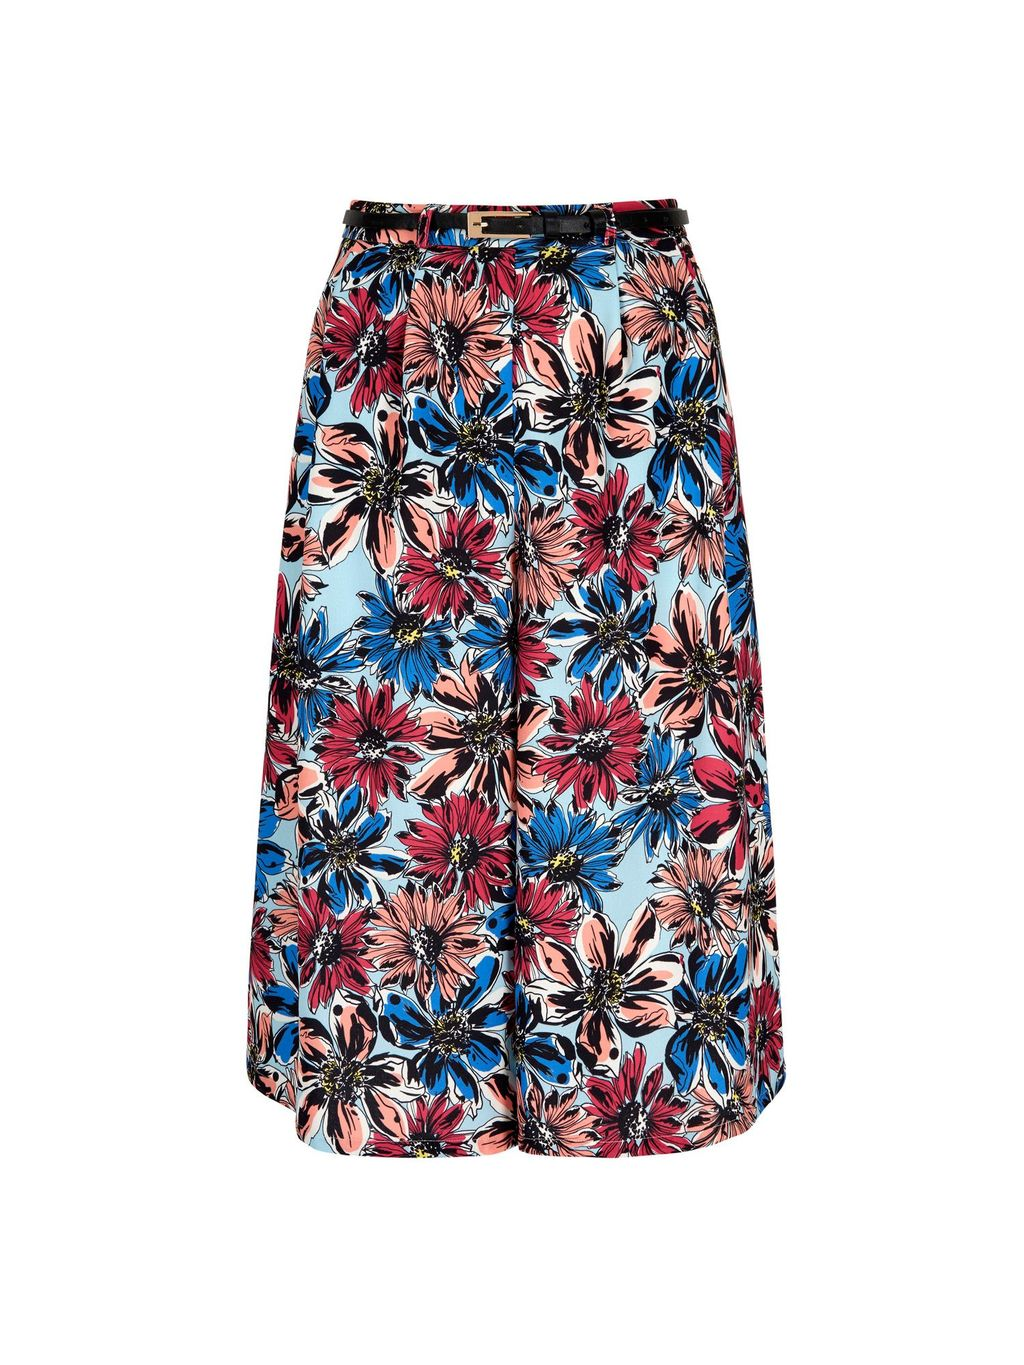 Big Floral Print Culottes, Multi Coloured - waist: high rise; predominant colour: black; occasions: casual, creative work; fibres: polyester/polyamide - 100%; waist detail: feature waist detail; pattern type: fabric; pattern: florals; texture group: other - light to midweight; multicoloured: multicoloured; season: s/s 2016; style: culotte; length: below the knee; wardrobe: highlight